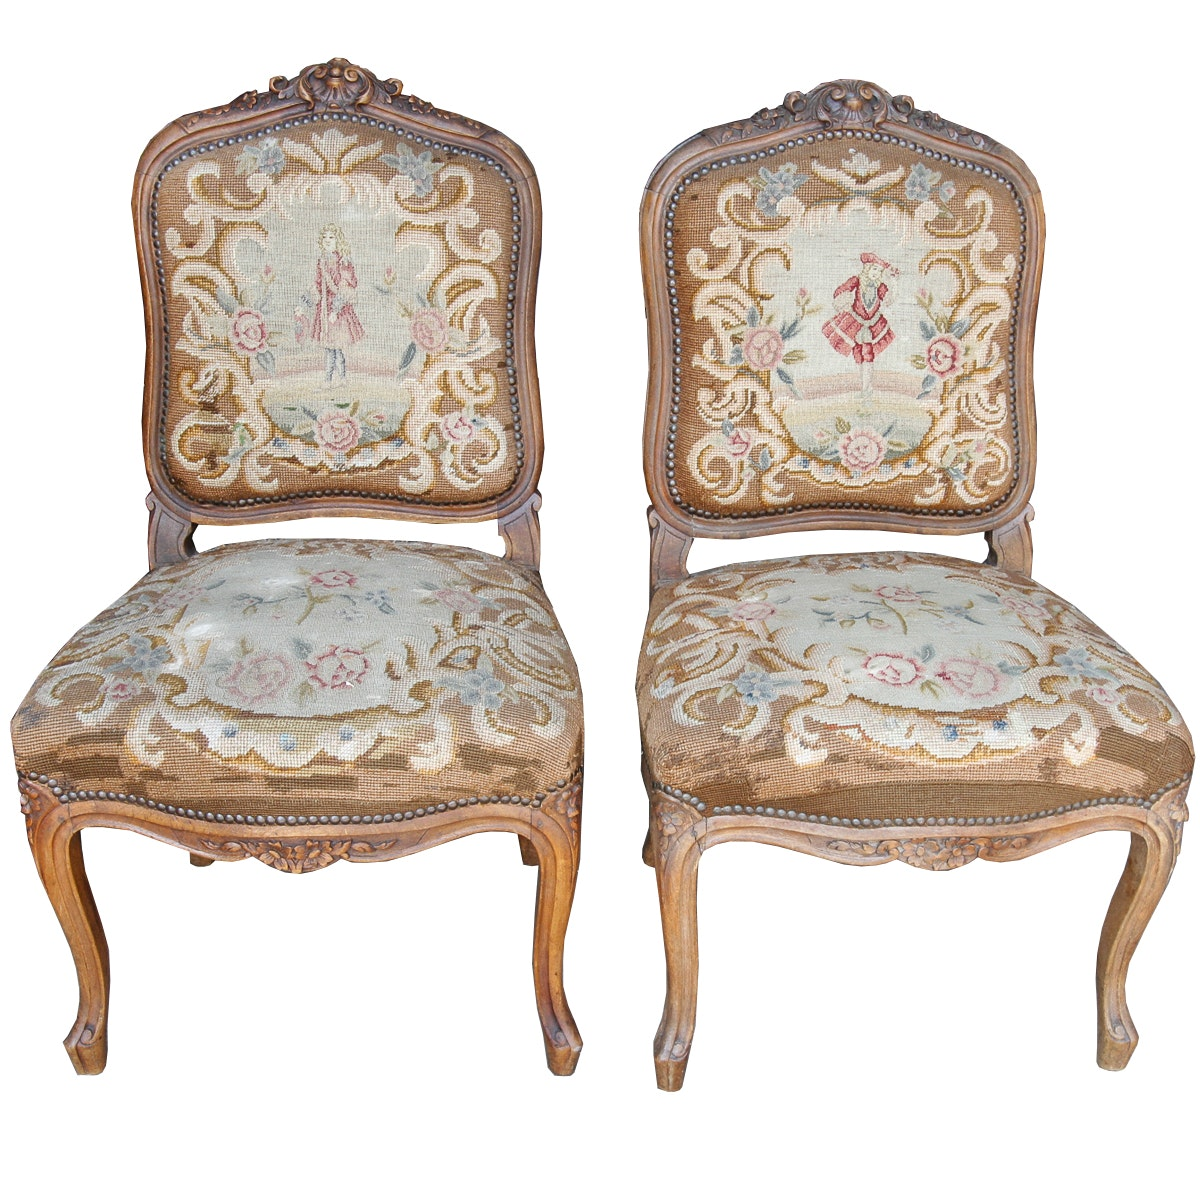 Vintage Louis XV Style Accent Chairs With Needlepoint Upholstery